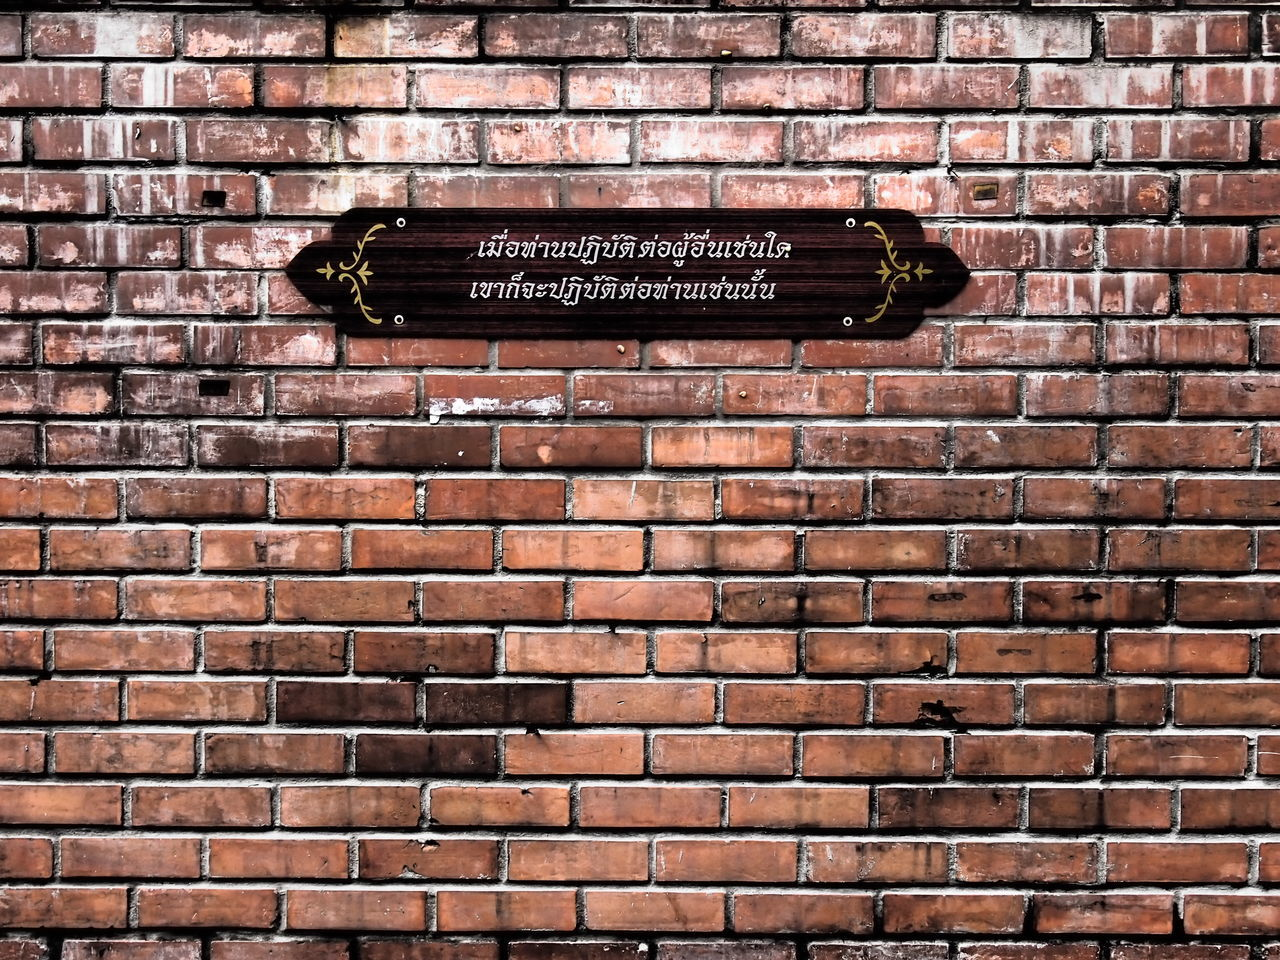 brick wall, text, western script, communication, single word, day, no people, built structure, architecture, outdoors